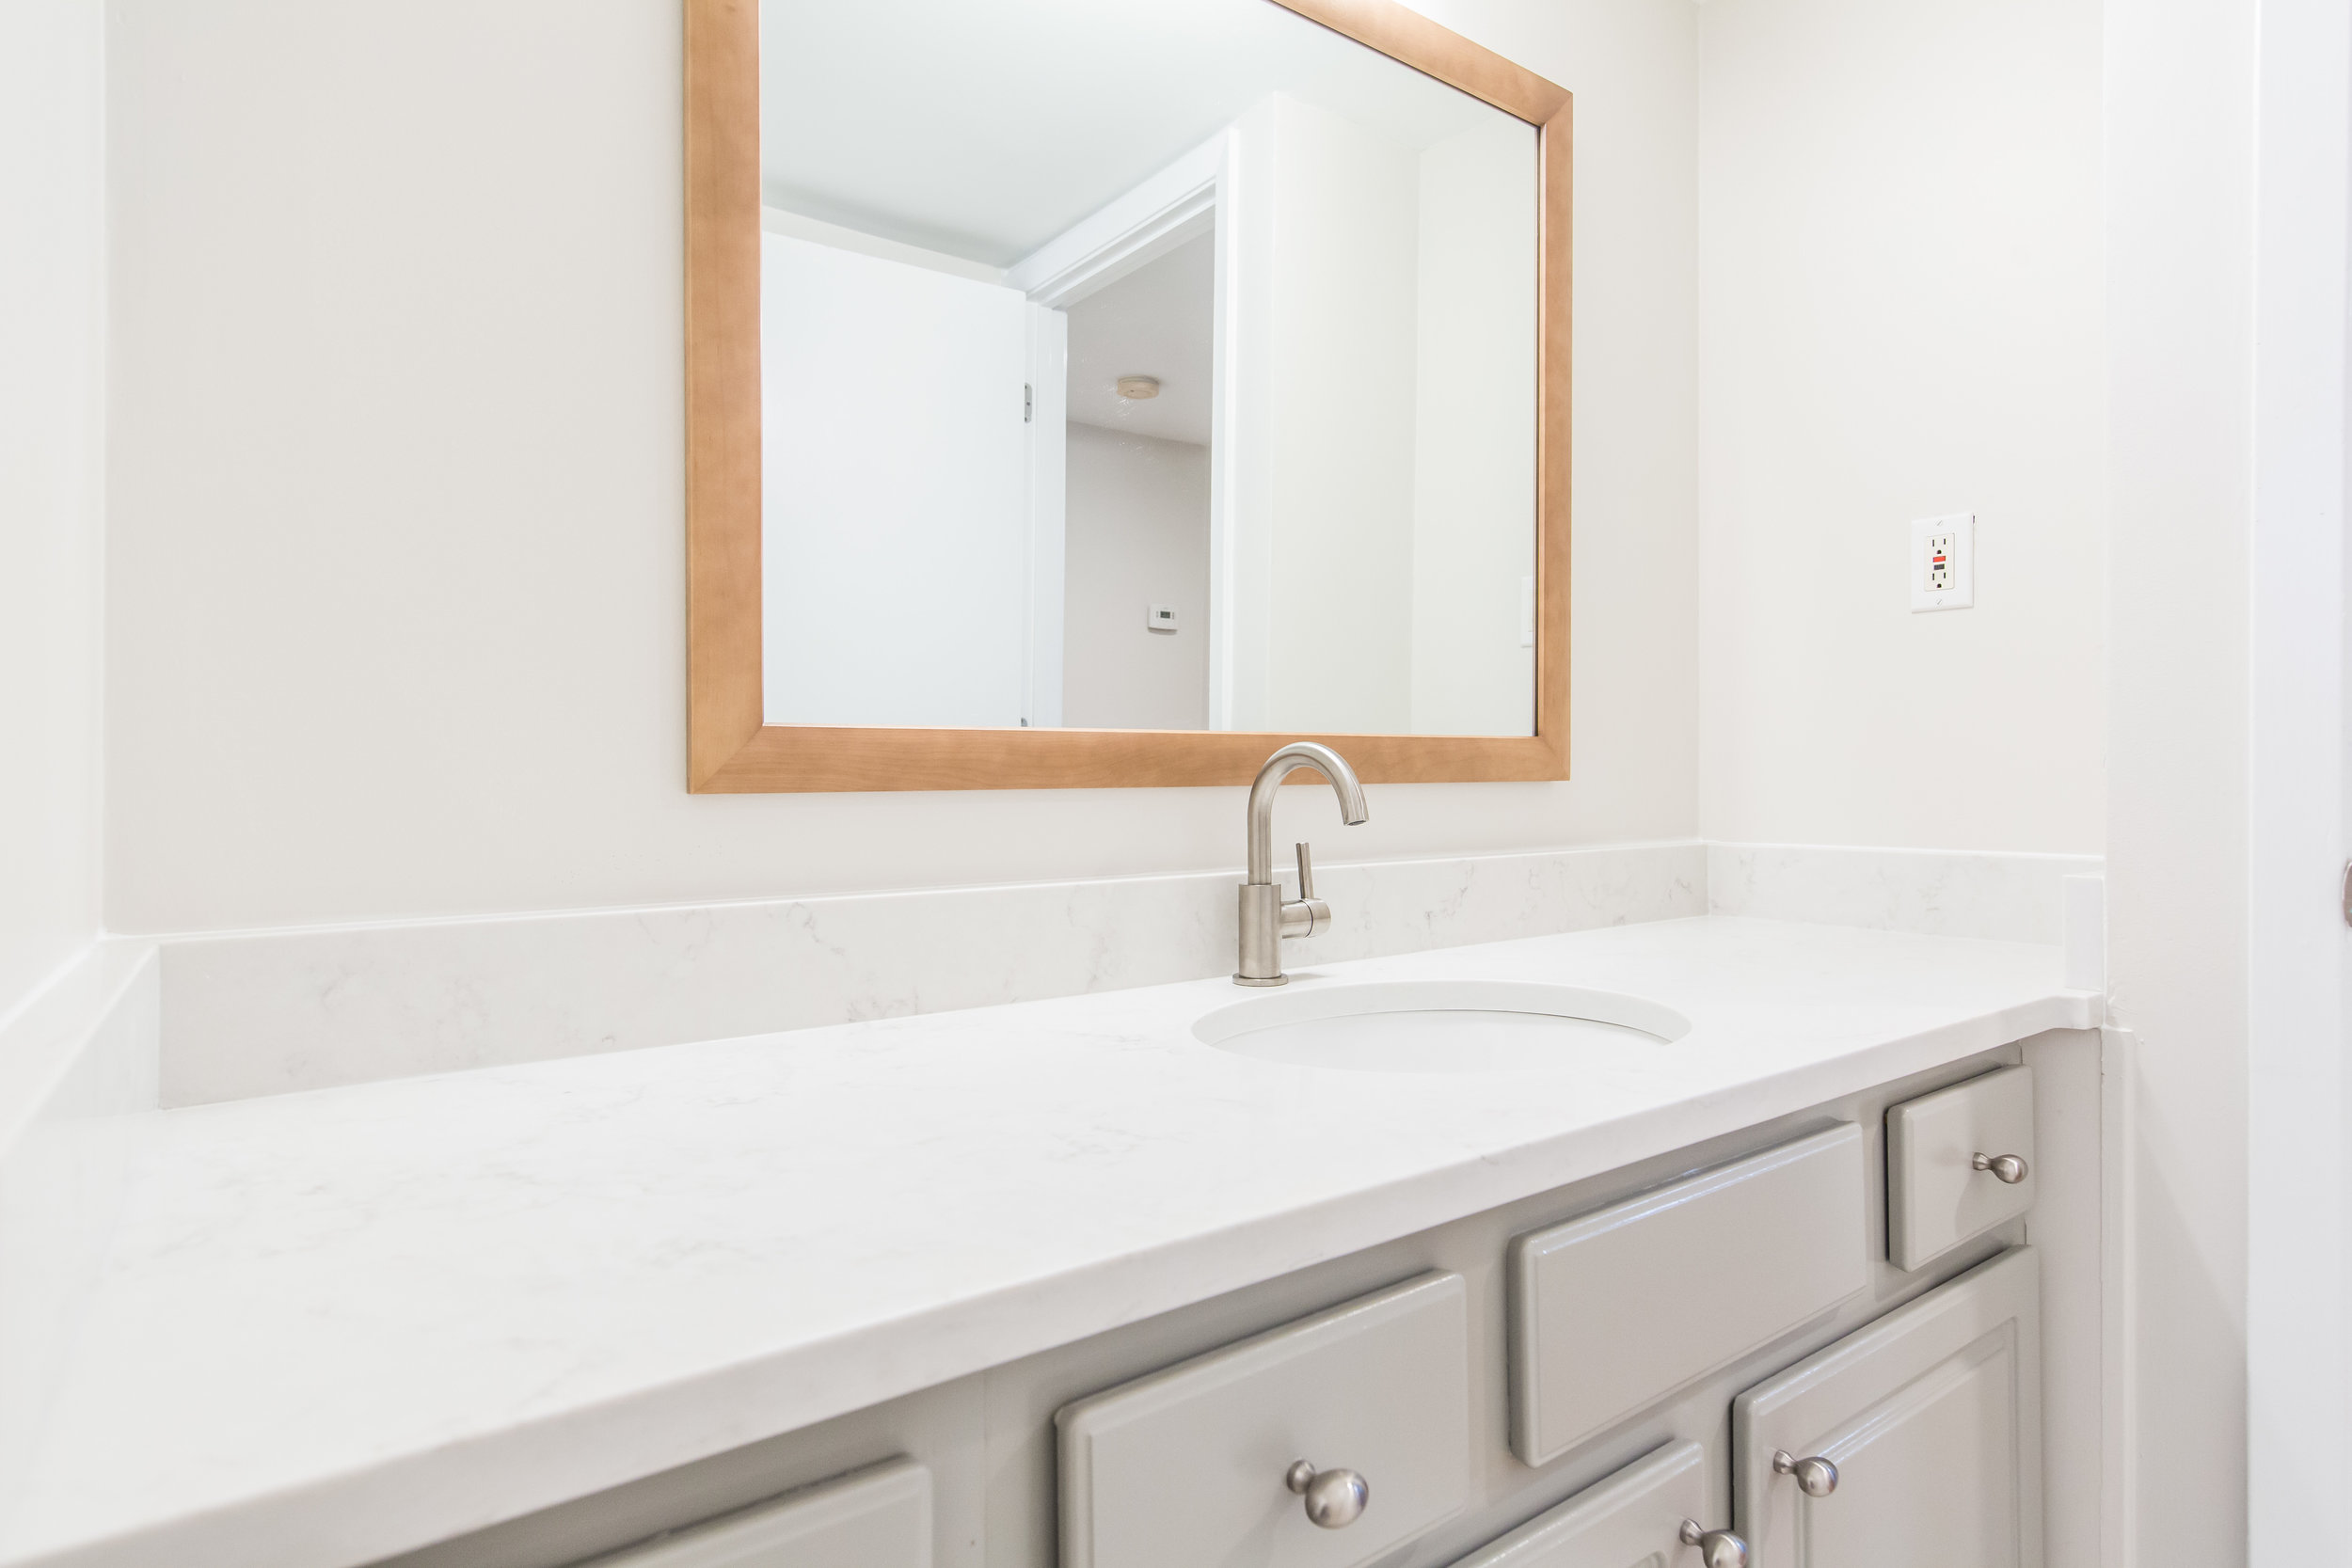 575 Flat Shoals Unit 9-Bath Vanity Detail.jpg